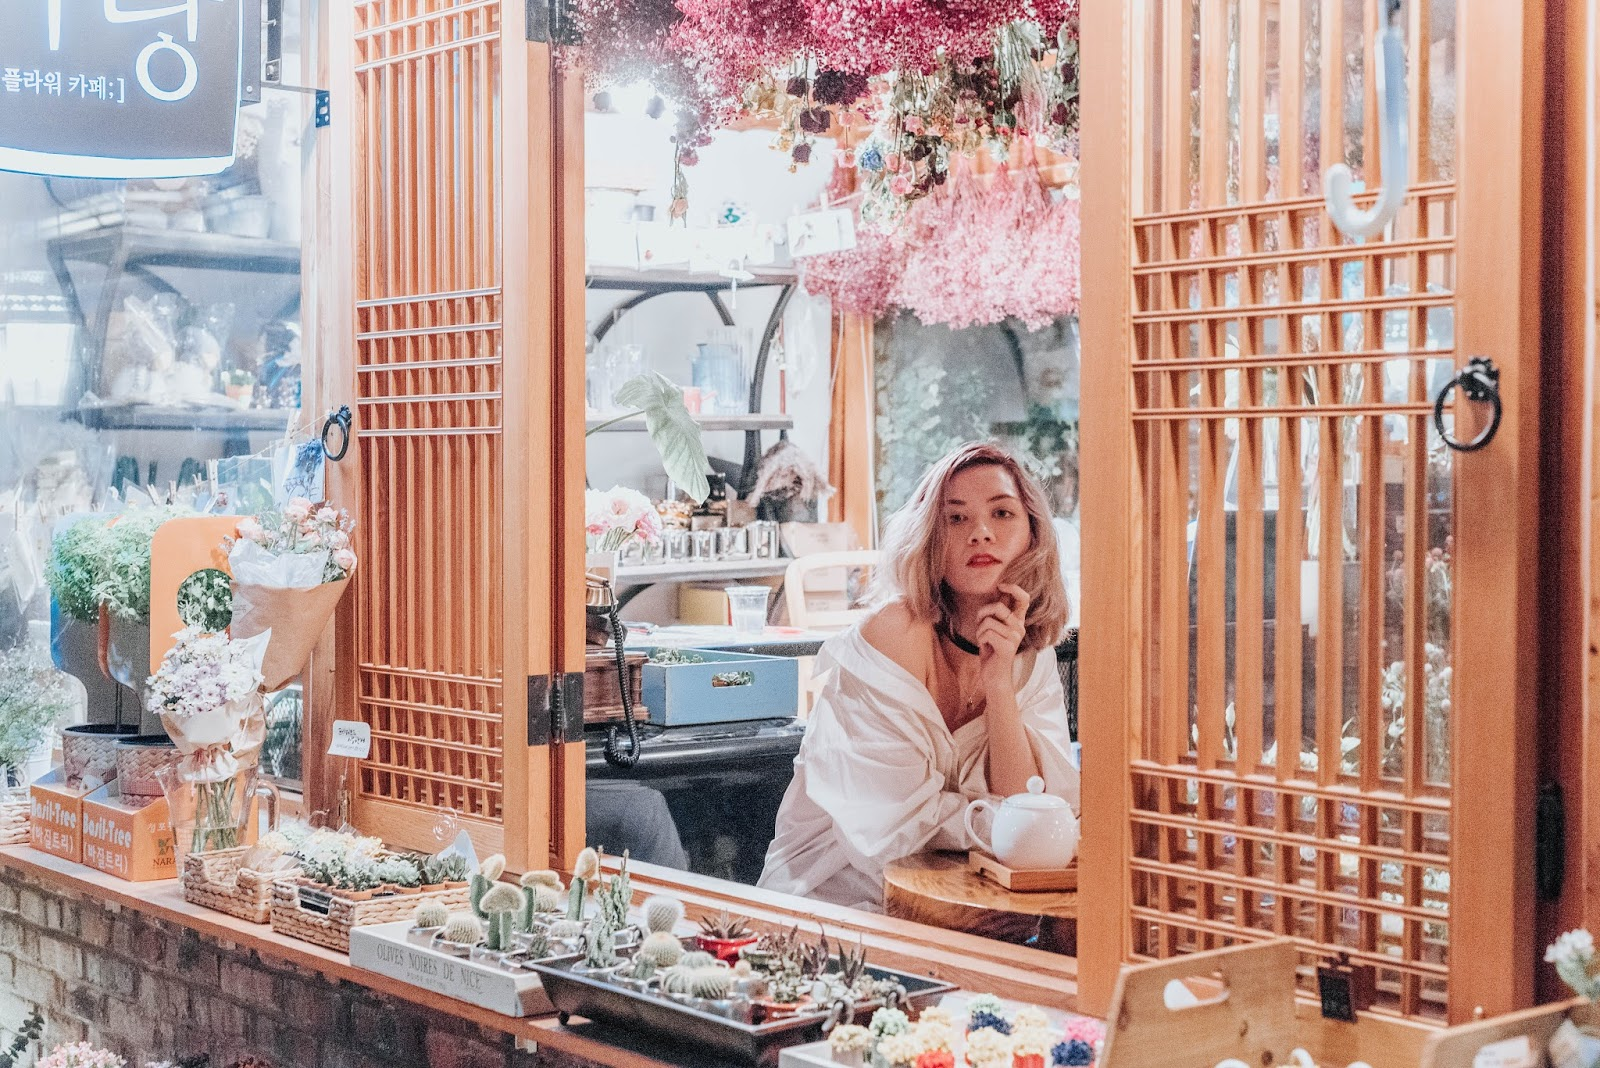 korea travel guide, seoul travel guide, seoul, korea, bukcheon, hanok village, insadong, travel guide, travel, seoul tourism, travel blog, and other stories, chloe girl, mejuri necklace,